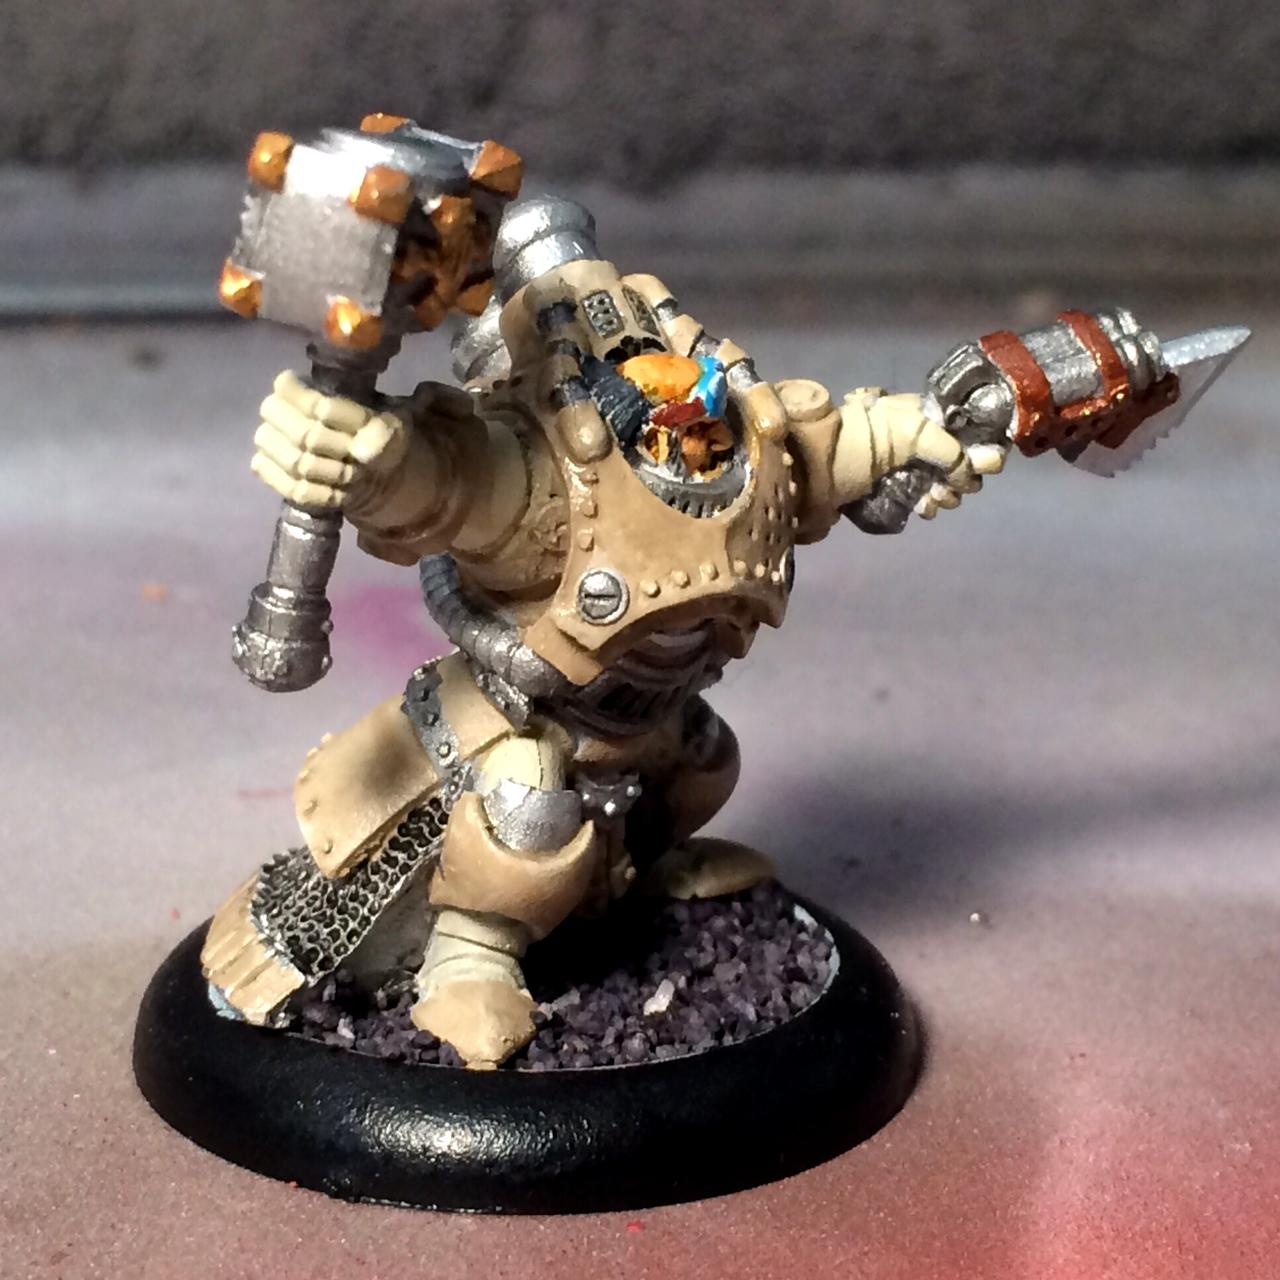 Gorton, Mercenary, Privateer Press, Rhulic, Warmachine